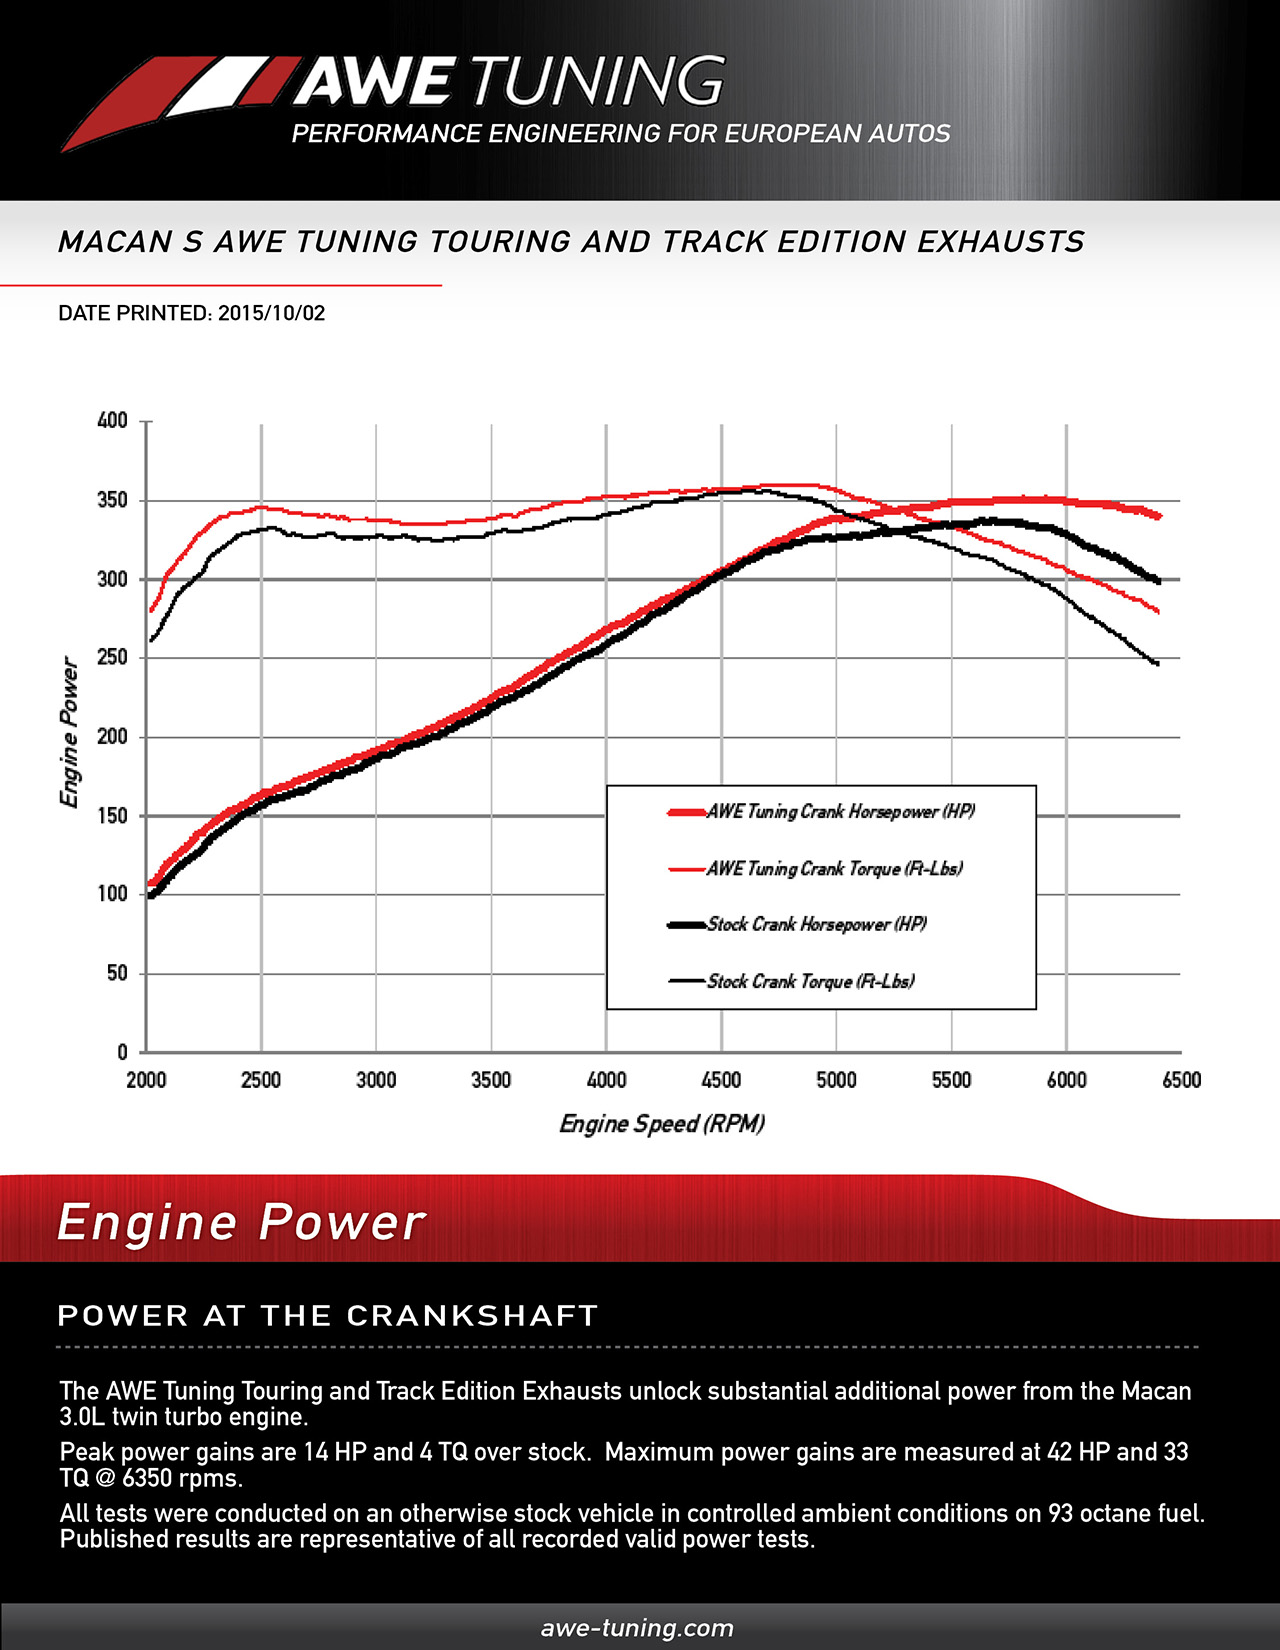 Awe Tuning Porsche Macan S Exhaust Suite Wiring Diagram Crank Horsepower Gains For The System